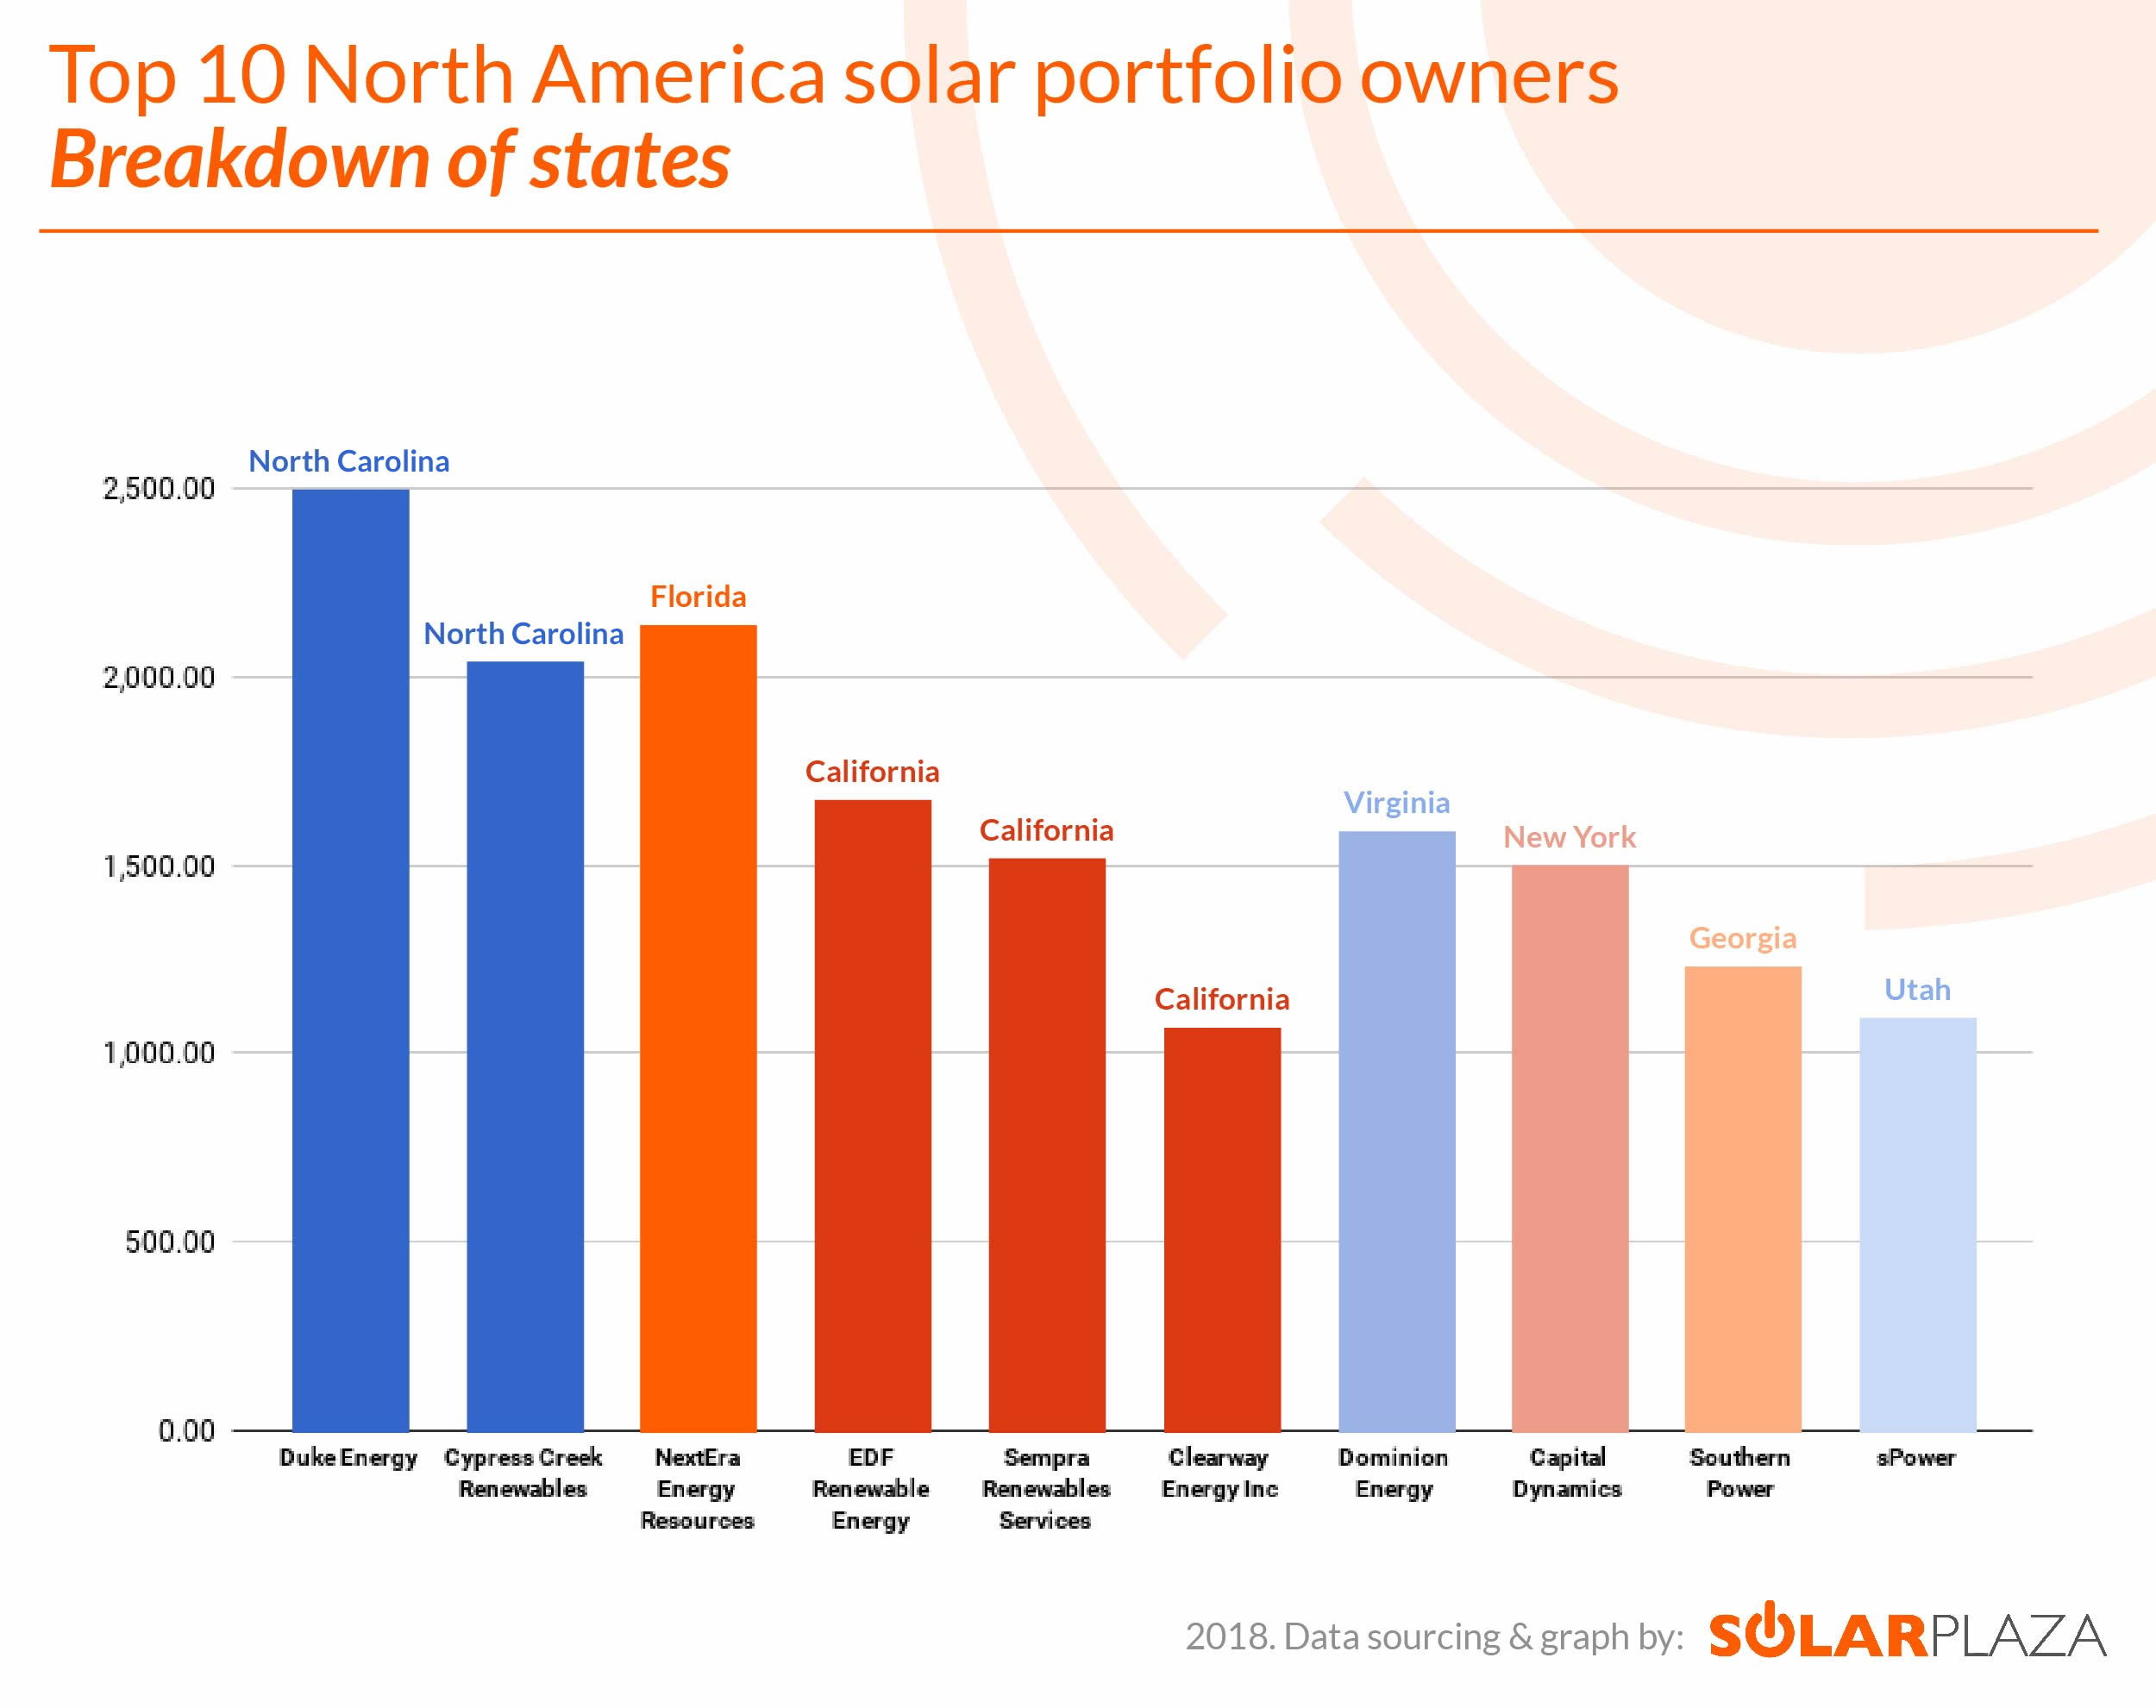 Figure 3: Top 10 North America solar portfolio owners- Breakdown of states